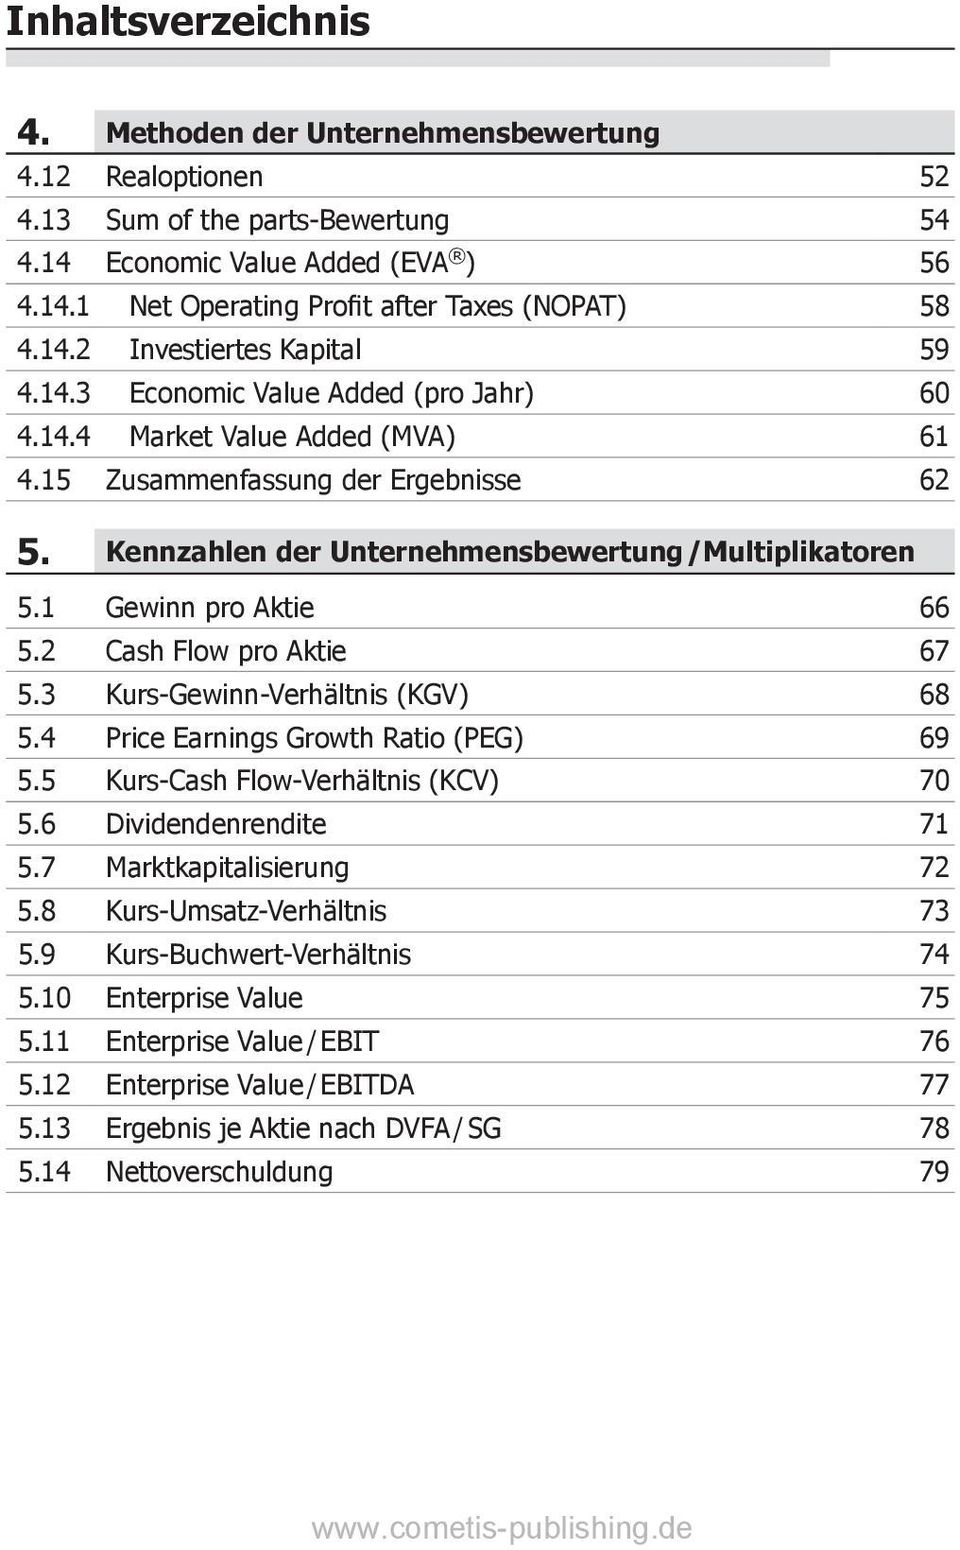 Kennzahlen der Unternehmensbewertung /Multiplikatoren 5.1 Gewinn pro Aktie 66 5.2 Cash Flow pro Aktie 67 5.3 Kurs-Gewinn-Verhältnis (KGV) 68 5.4 Price Earnings Growth Ratio (PEG) 69 5.